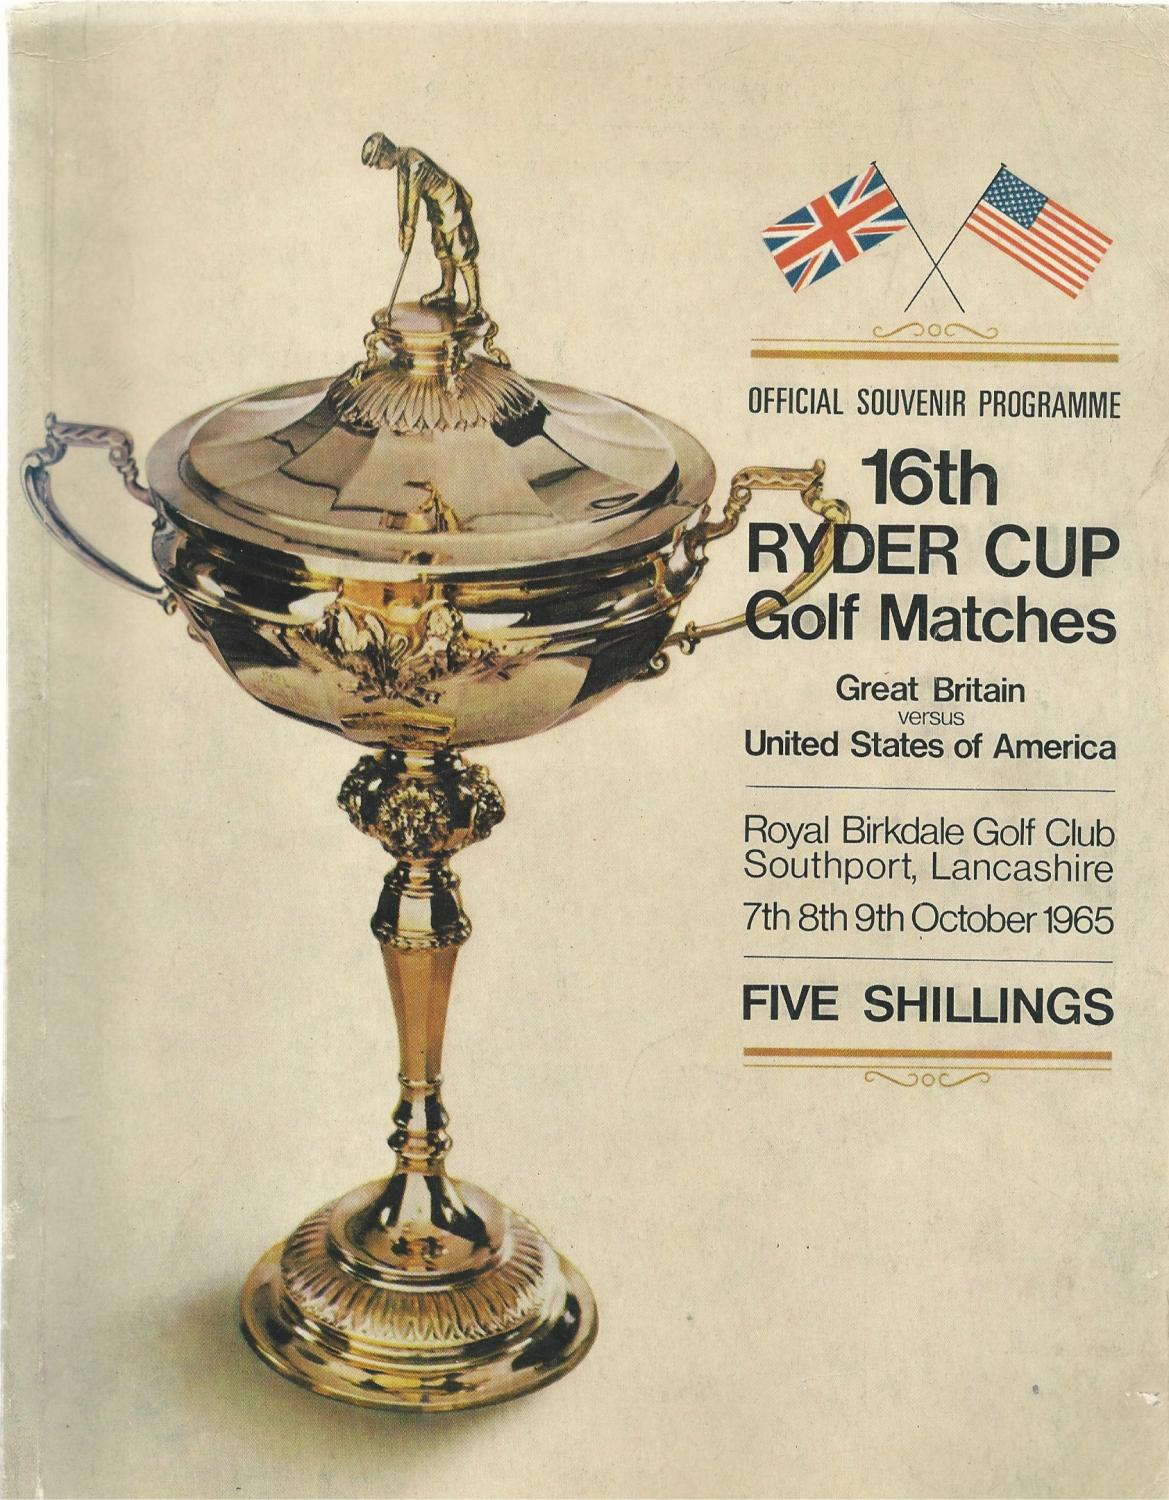 16th Ryder Cup Golf Matches. 1965. The Royal Birkdale Golf Club. Official Programme (Ryder Cup)